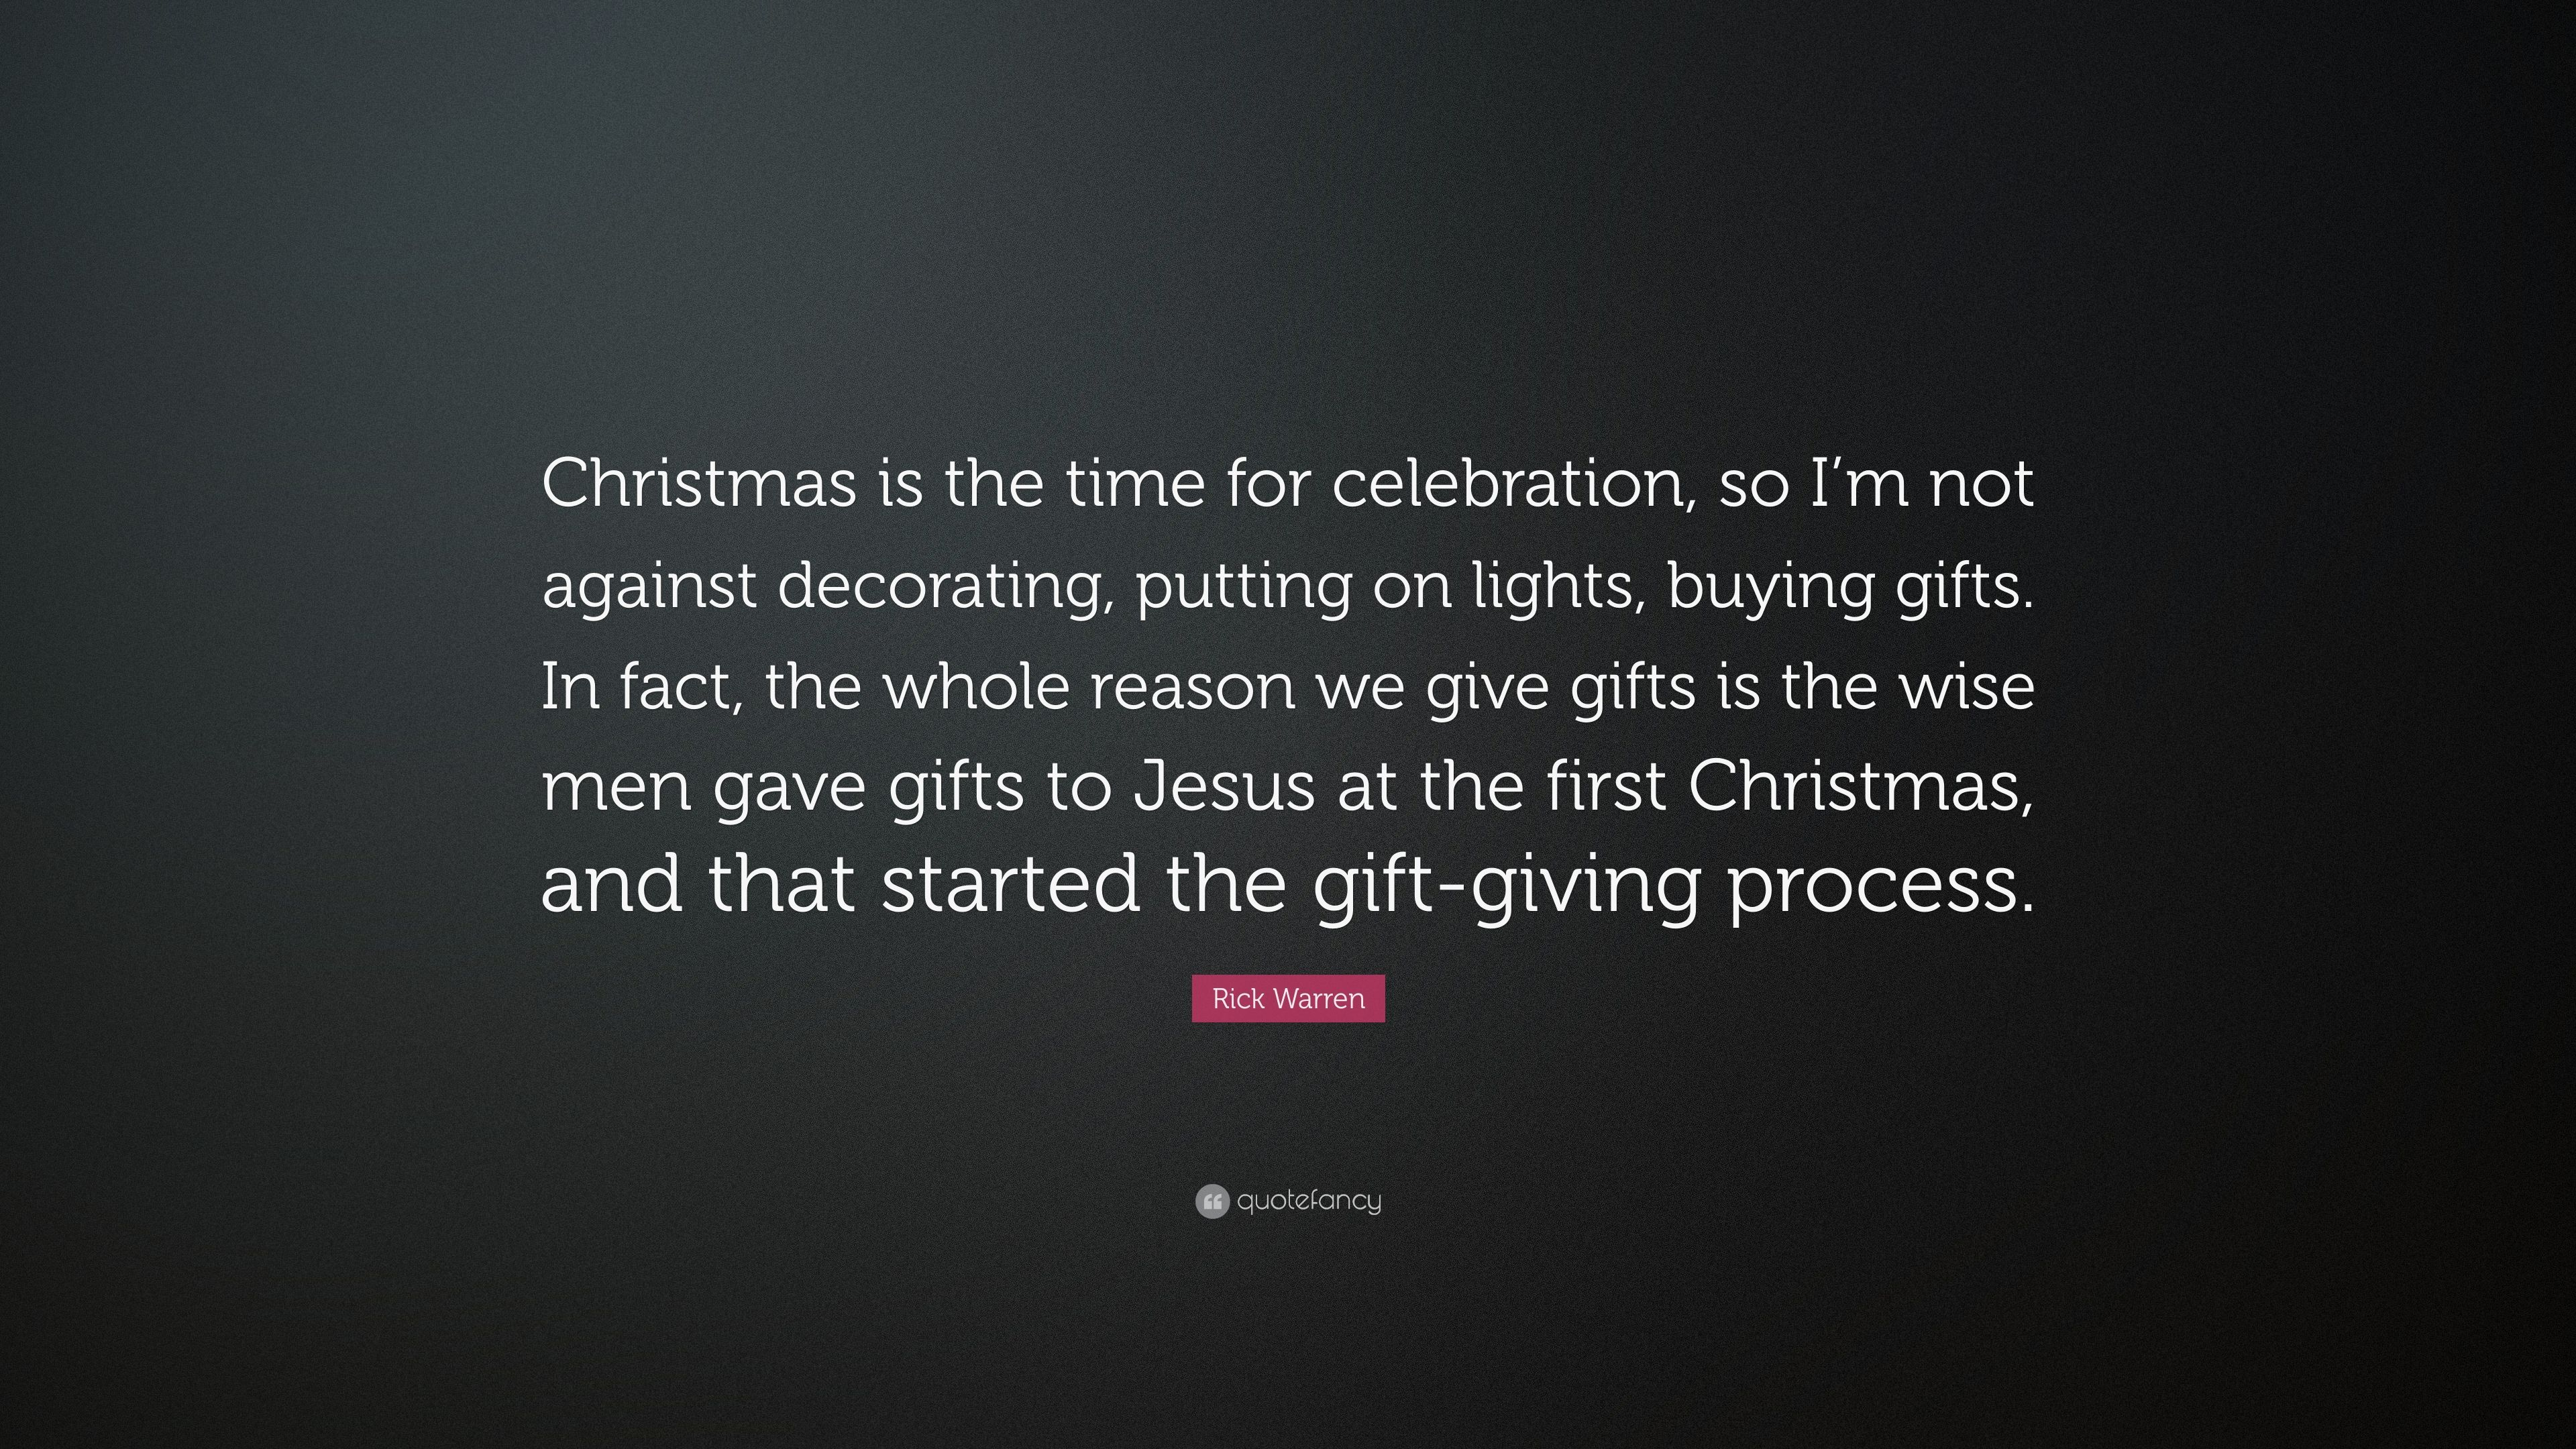 Rick Warren Quote: U201cChristmas Is The Time For Celebration, So Iu0027m